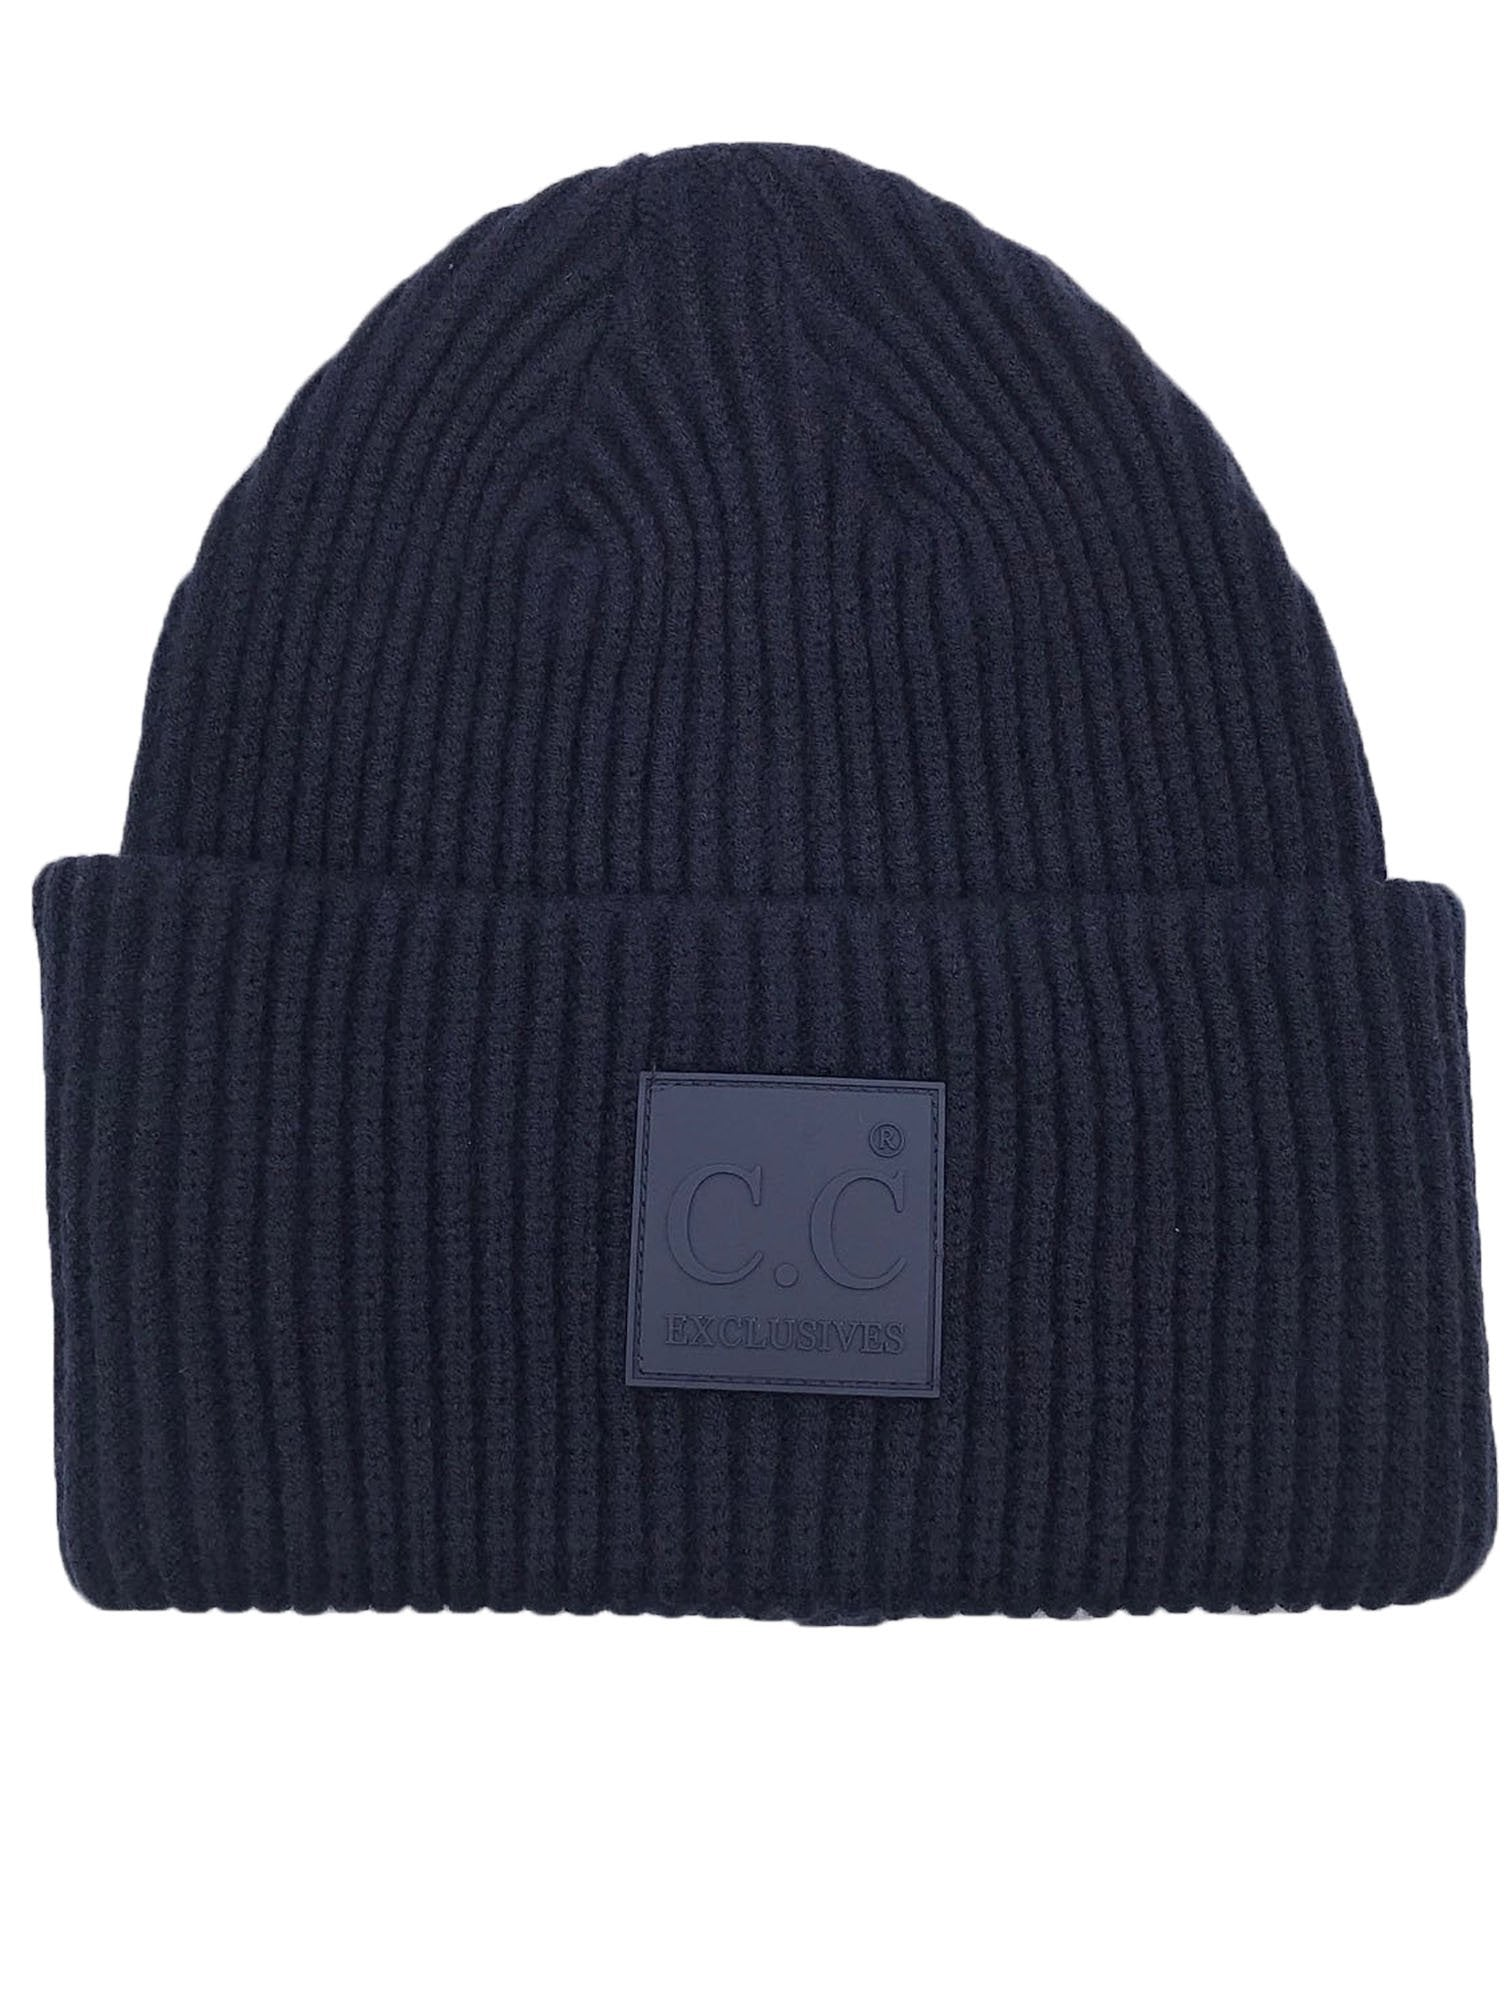 HAT-7007 Beanie with Rubber Patch Navy